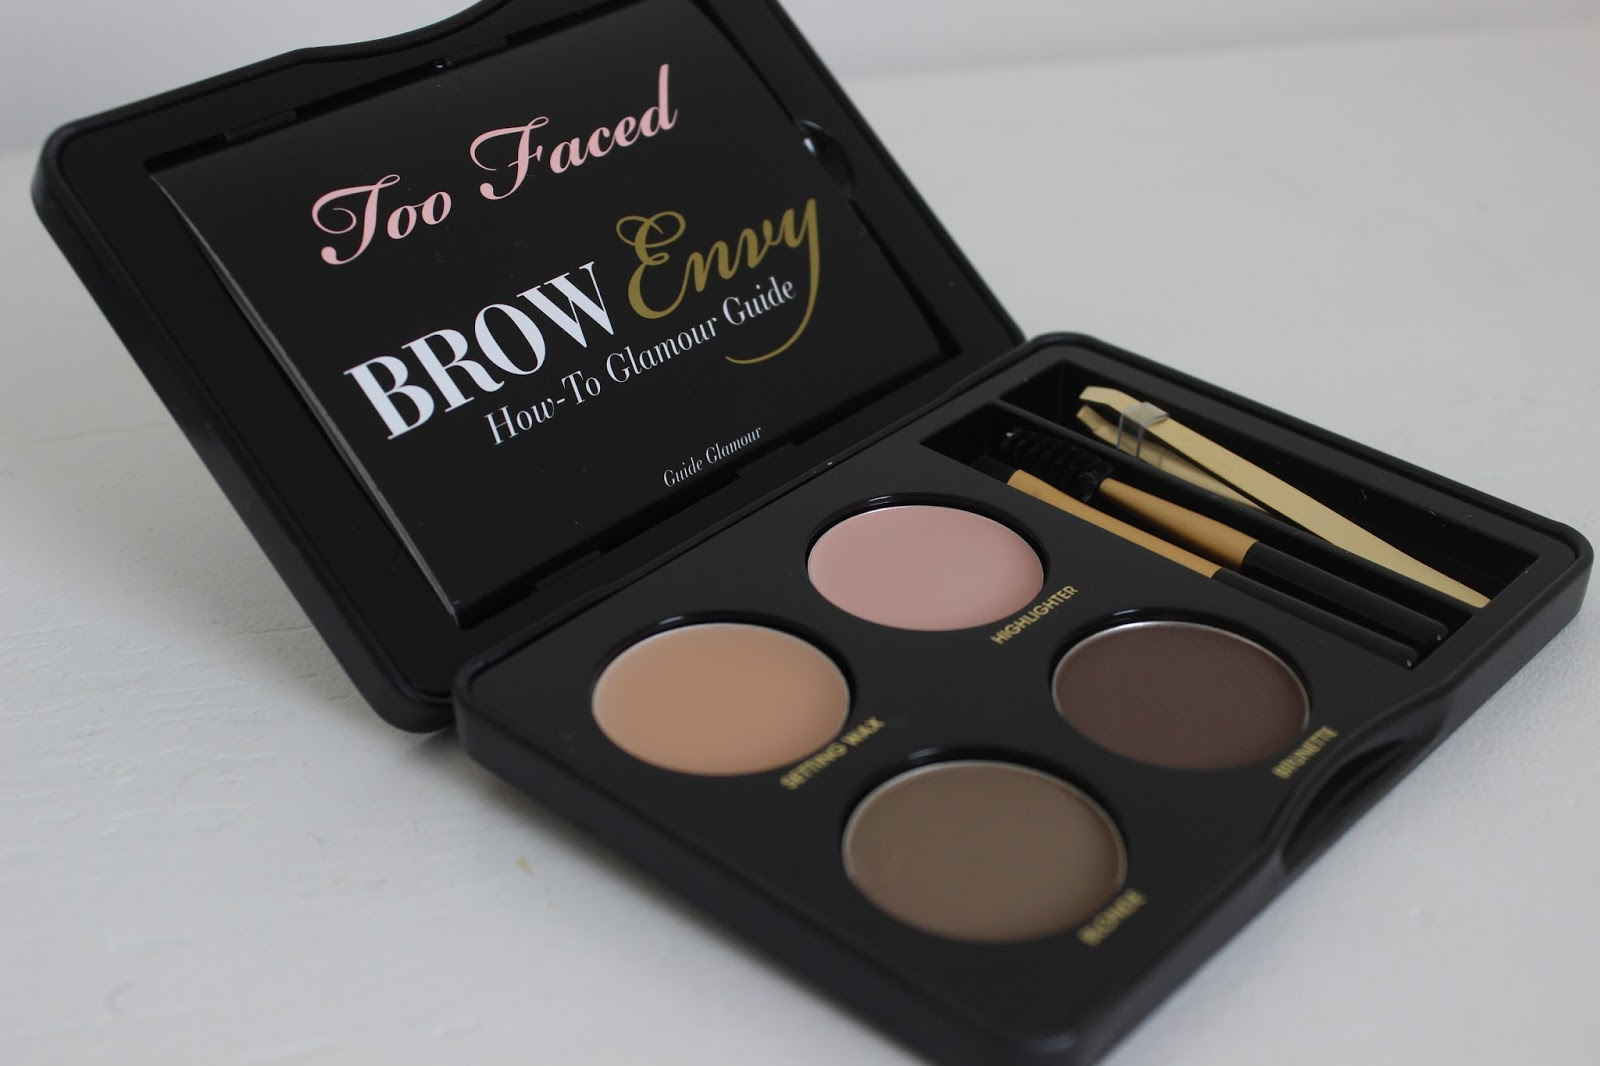 Belles Boutique Uk Beauty Mummy Blog Too Faced Brow Envy